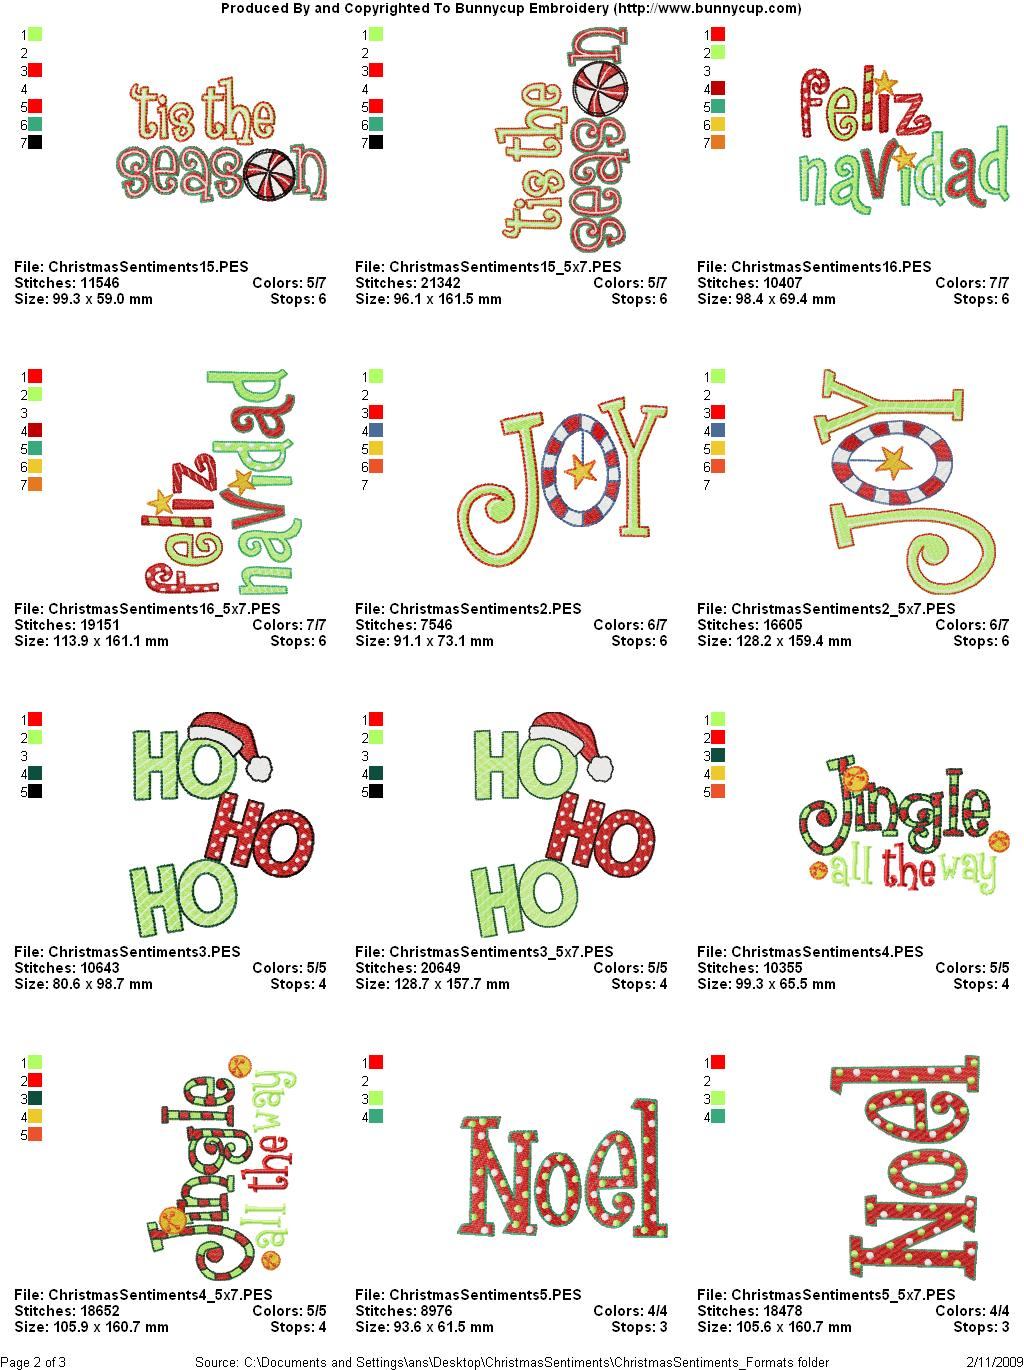 Used Embroidery Machines For Sale >> Christmas Sentiments Embroidery Designs - Bunnycup Embroidery